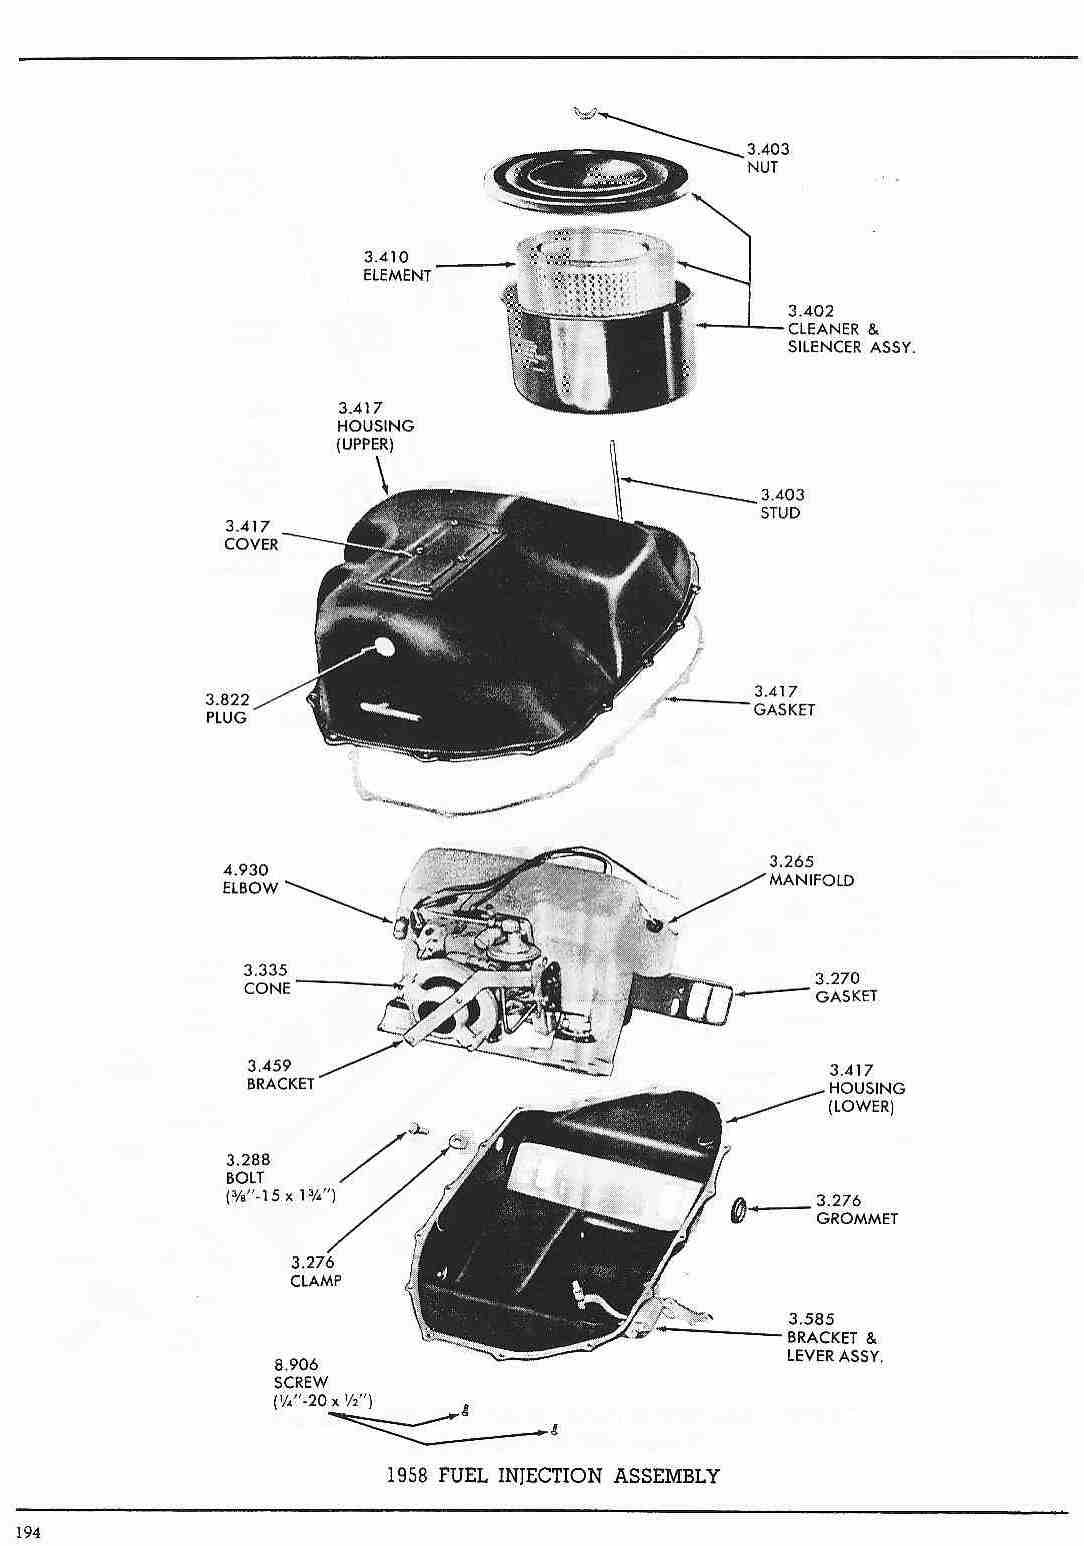 TA91000 moreover 1939 Chrysler Wiring Diagram as well Manual Transmission Diagram Labeled furthermore Showthread also Cg cat1 brakes pedal pads springs. on 1938 ford truck parts html